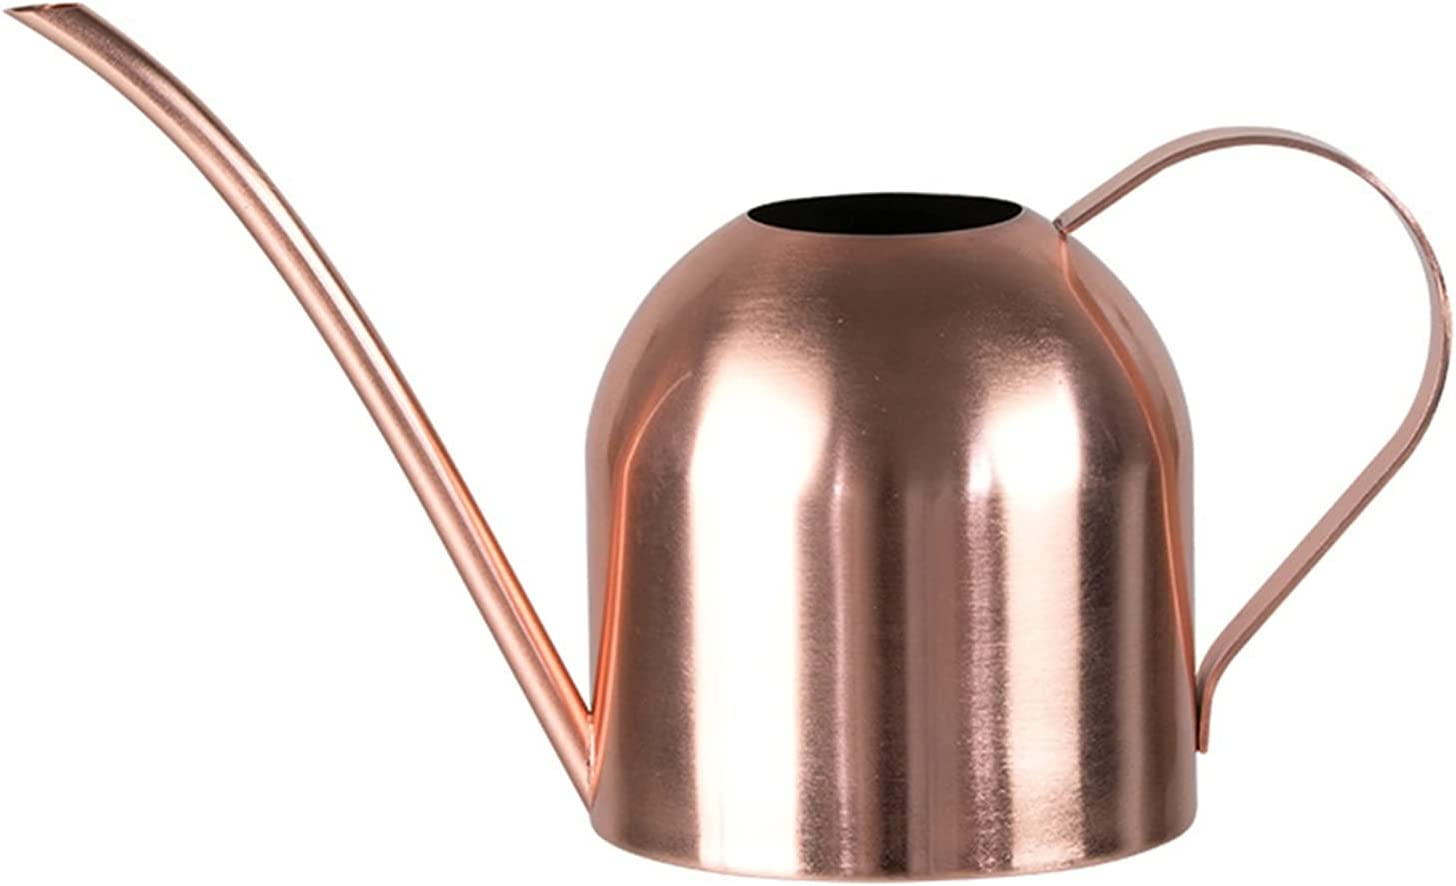 WYDMBH Watering can 500ml Stainless Golden sale Max 77% OFF Steel Retro